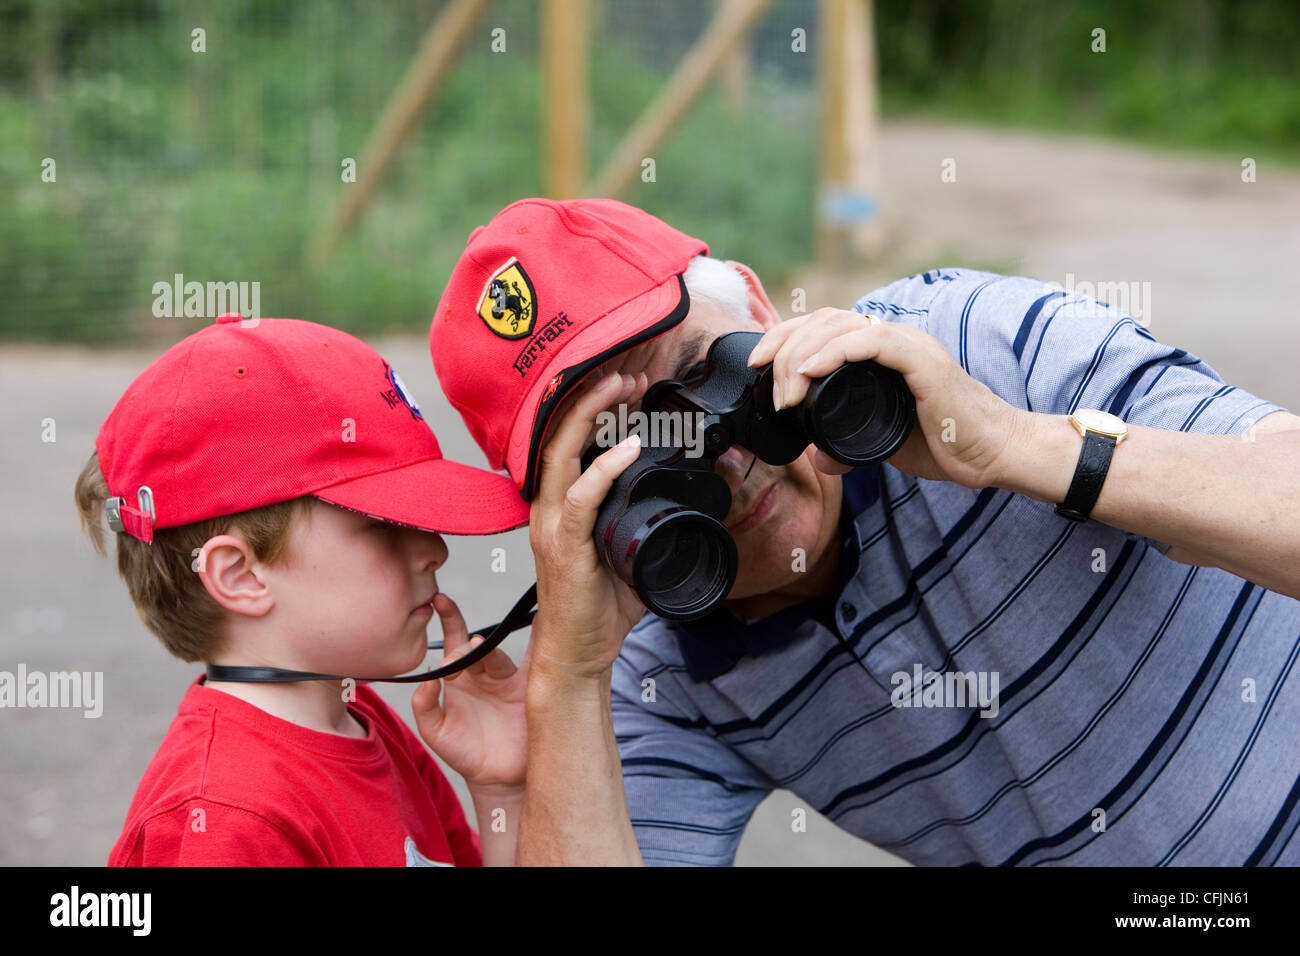 4f5f598880ffb Borrowing the binoculars at WWT Slimbridge Stock Photo  44052345 - Alamy